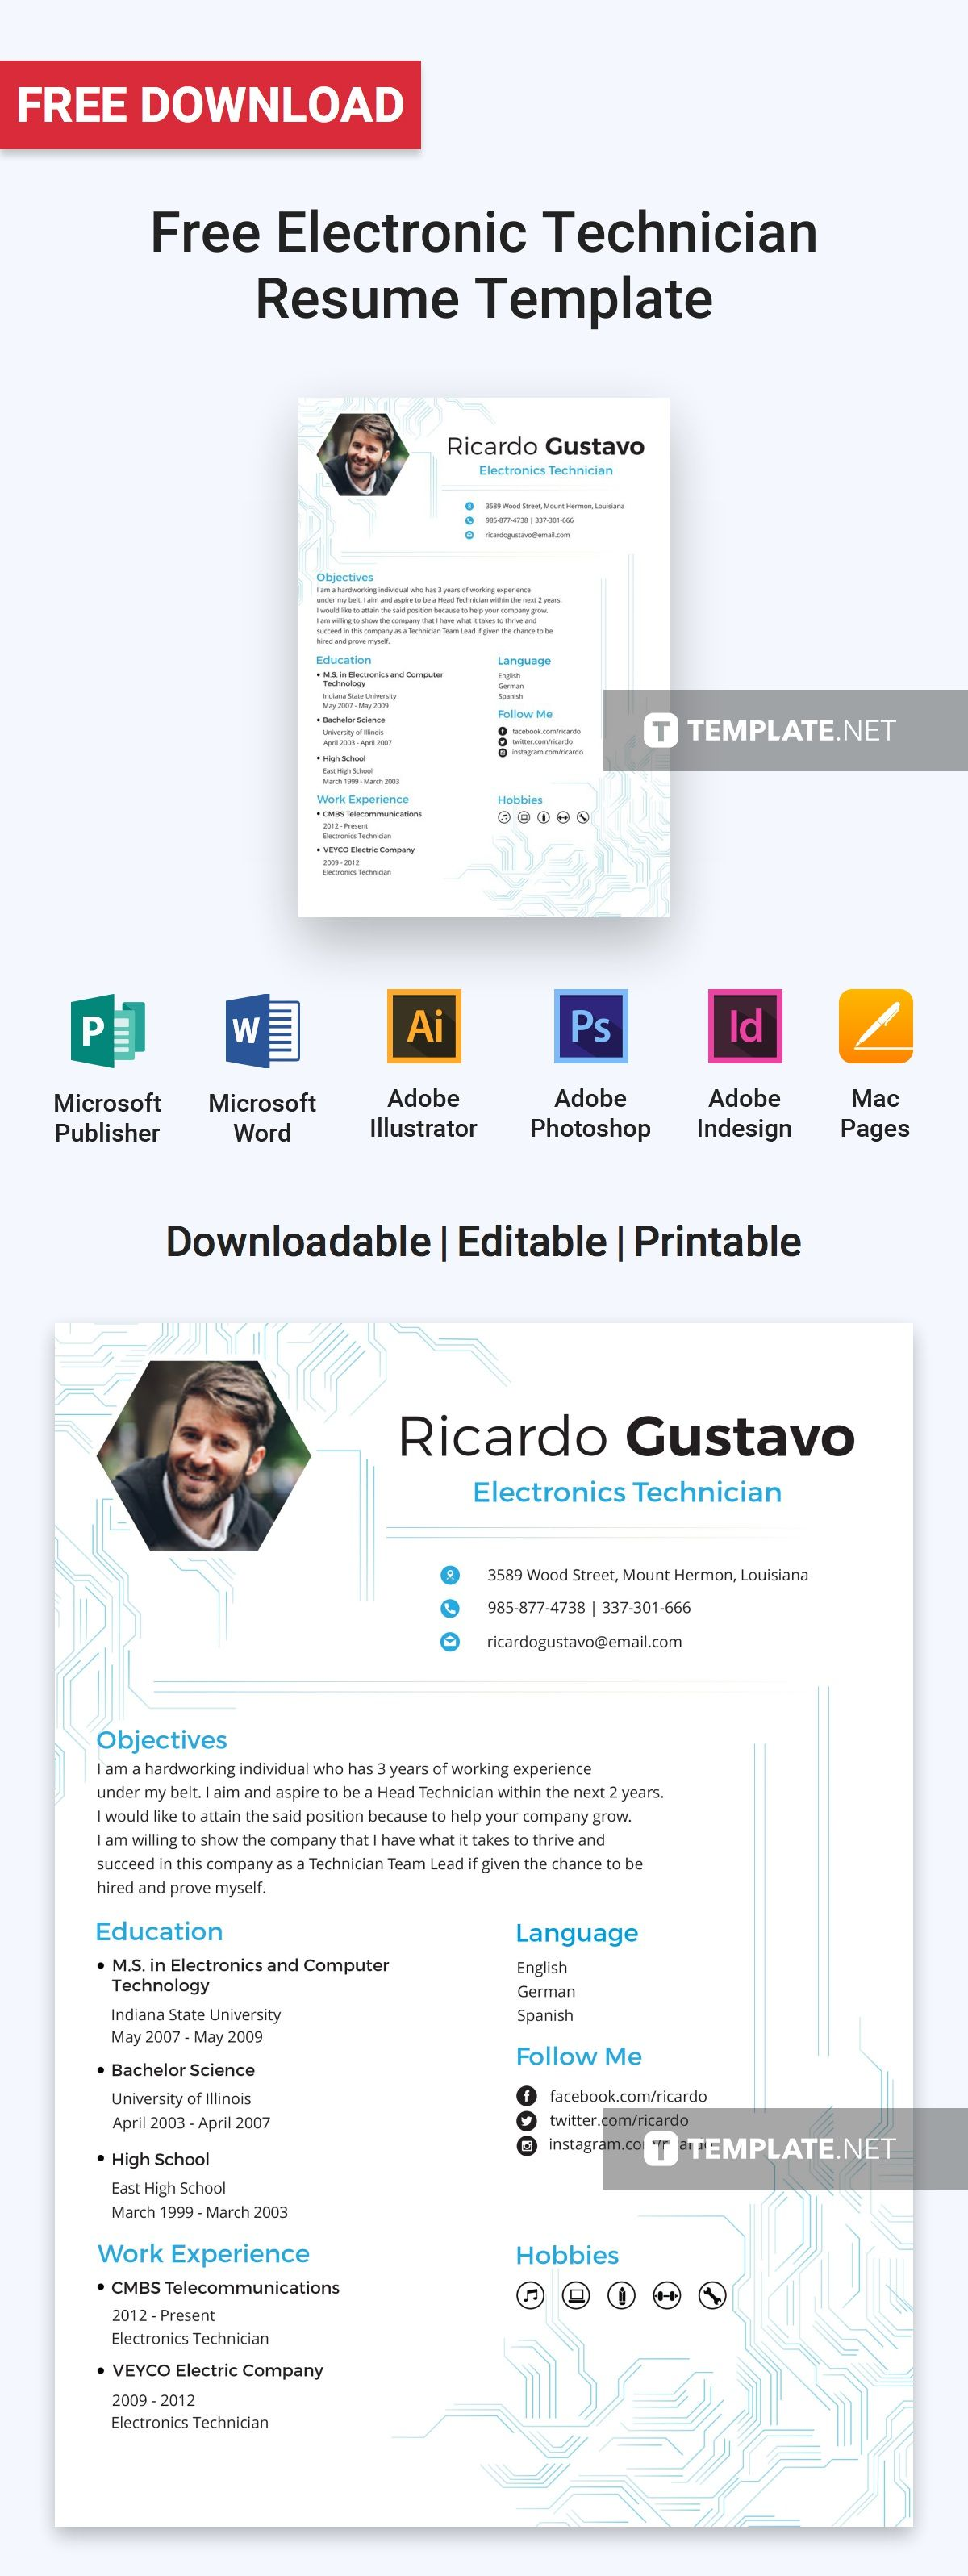 Free Electronic Technician Resume Cv Template Word Doc Psd Indesign Apple Mac Pages Illustrator Publisher Resume Design Resume Design Free Electronic Technician